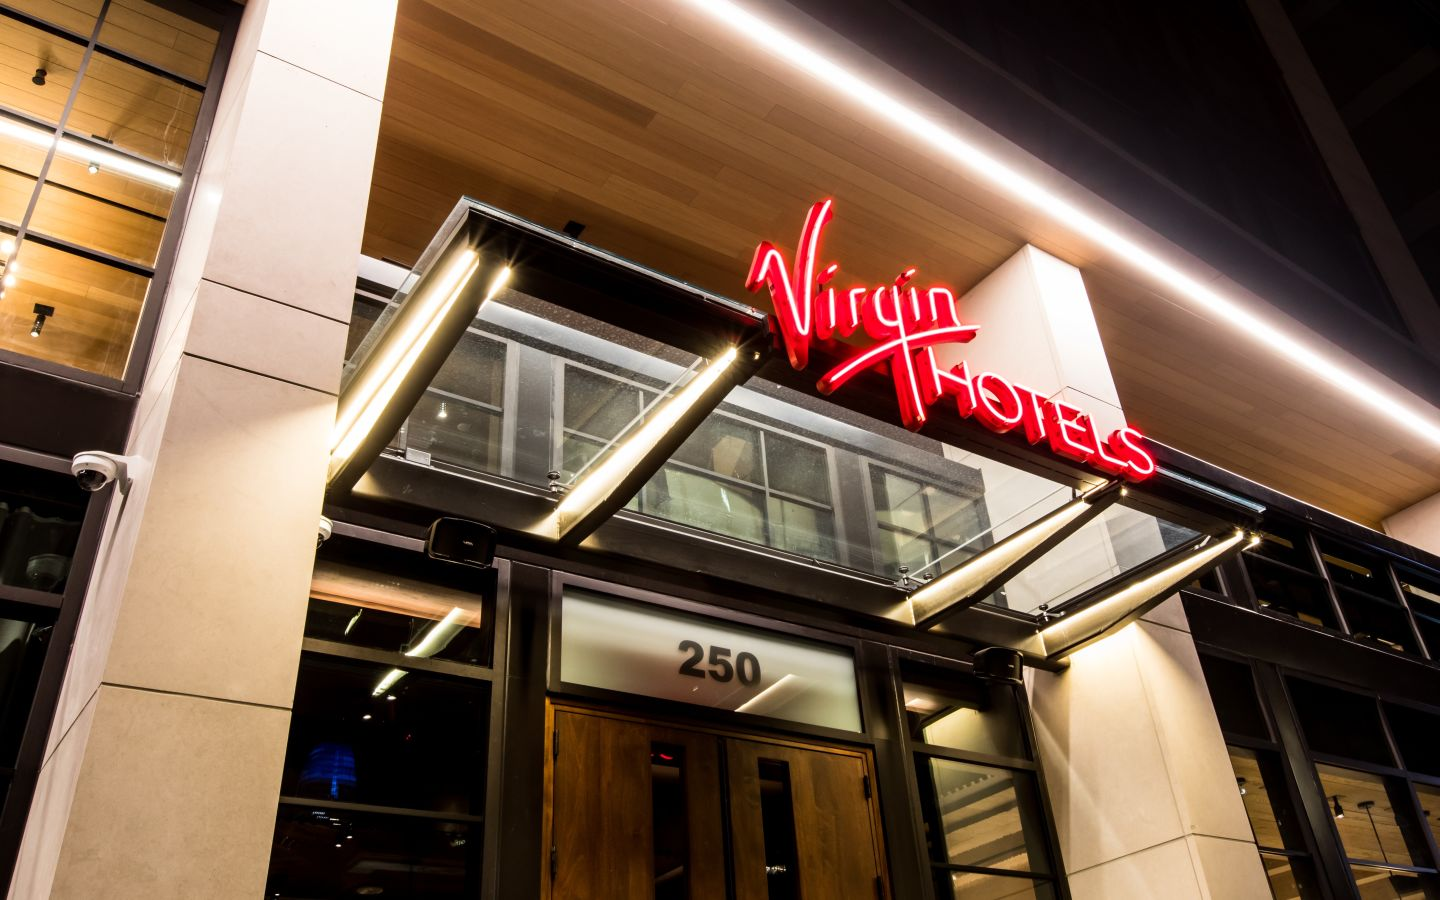 The exterior entrance to Virgin Hotels. The sign is lit up in red.